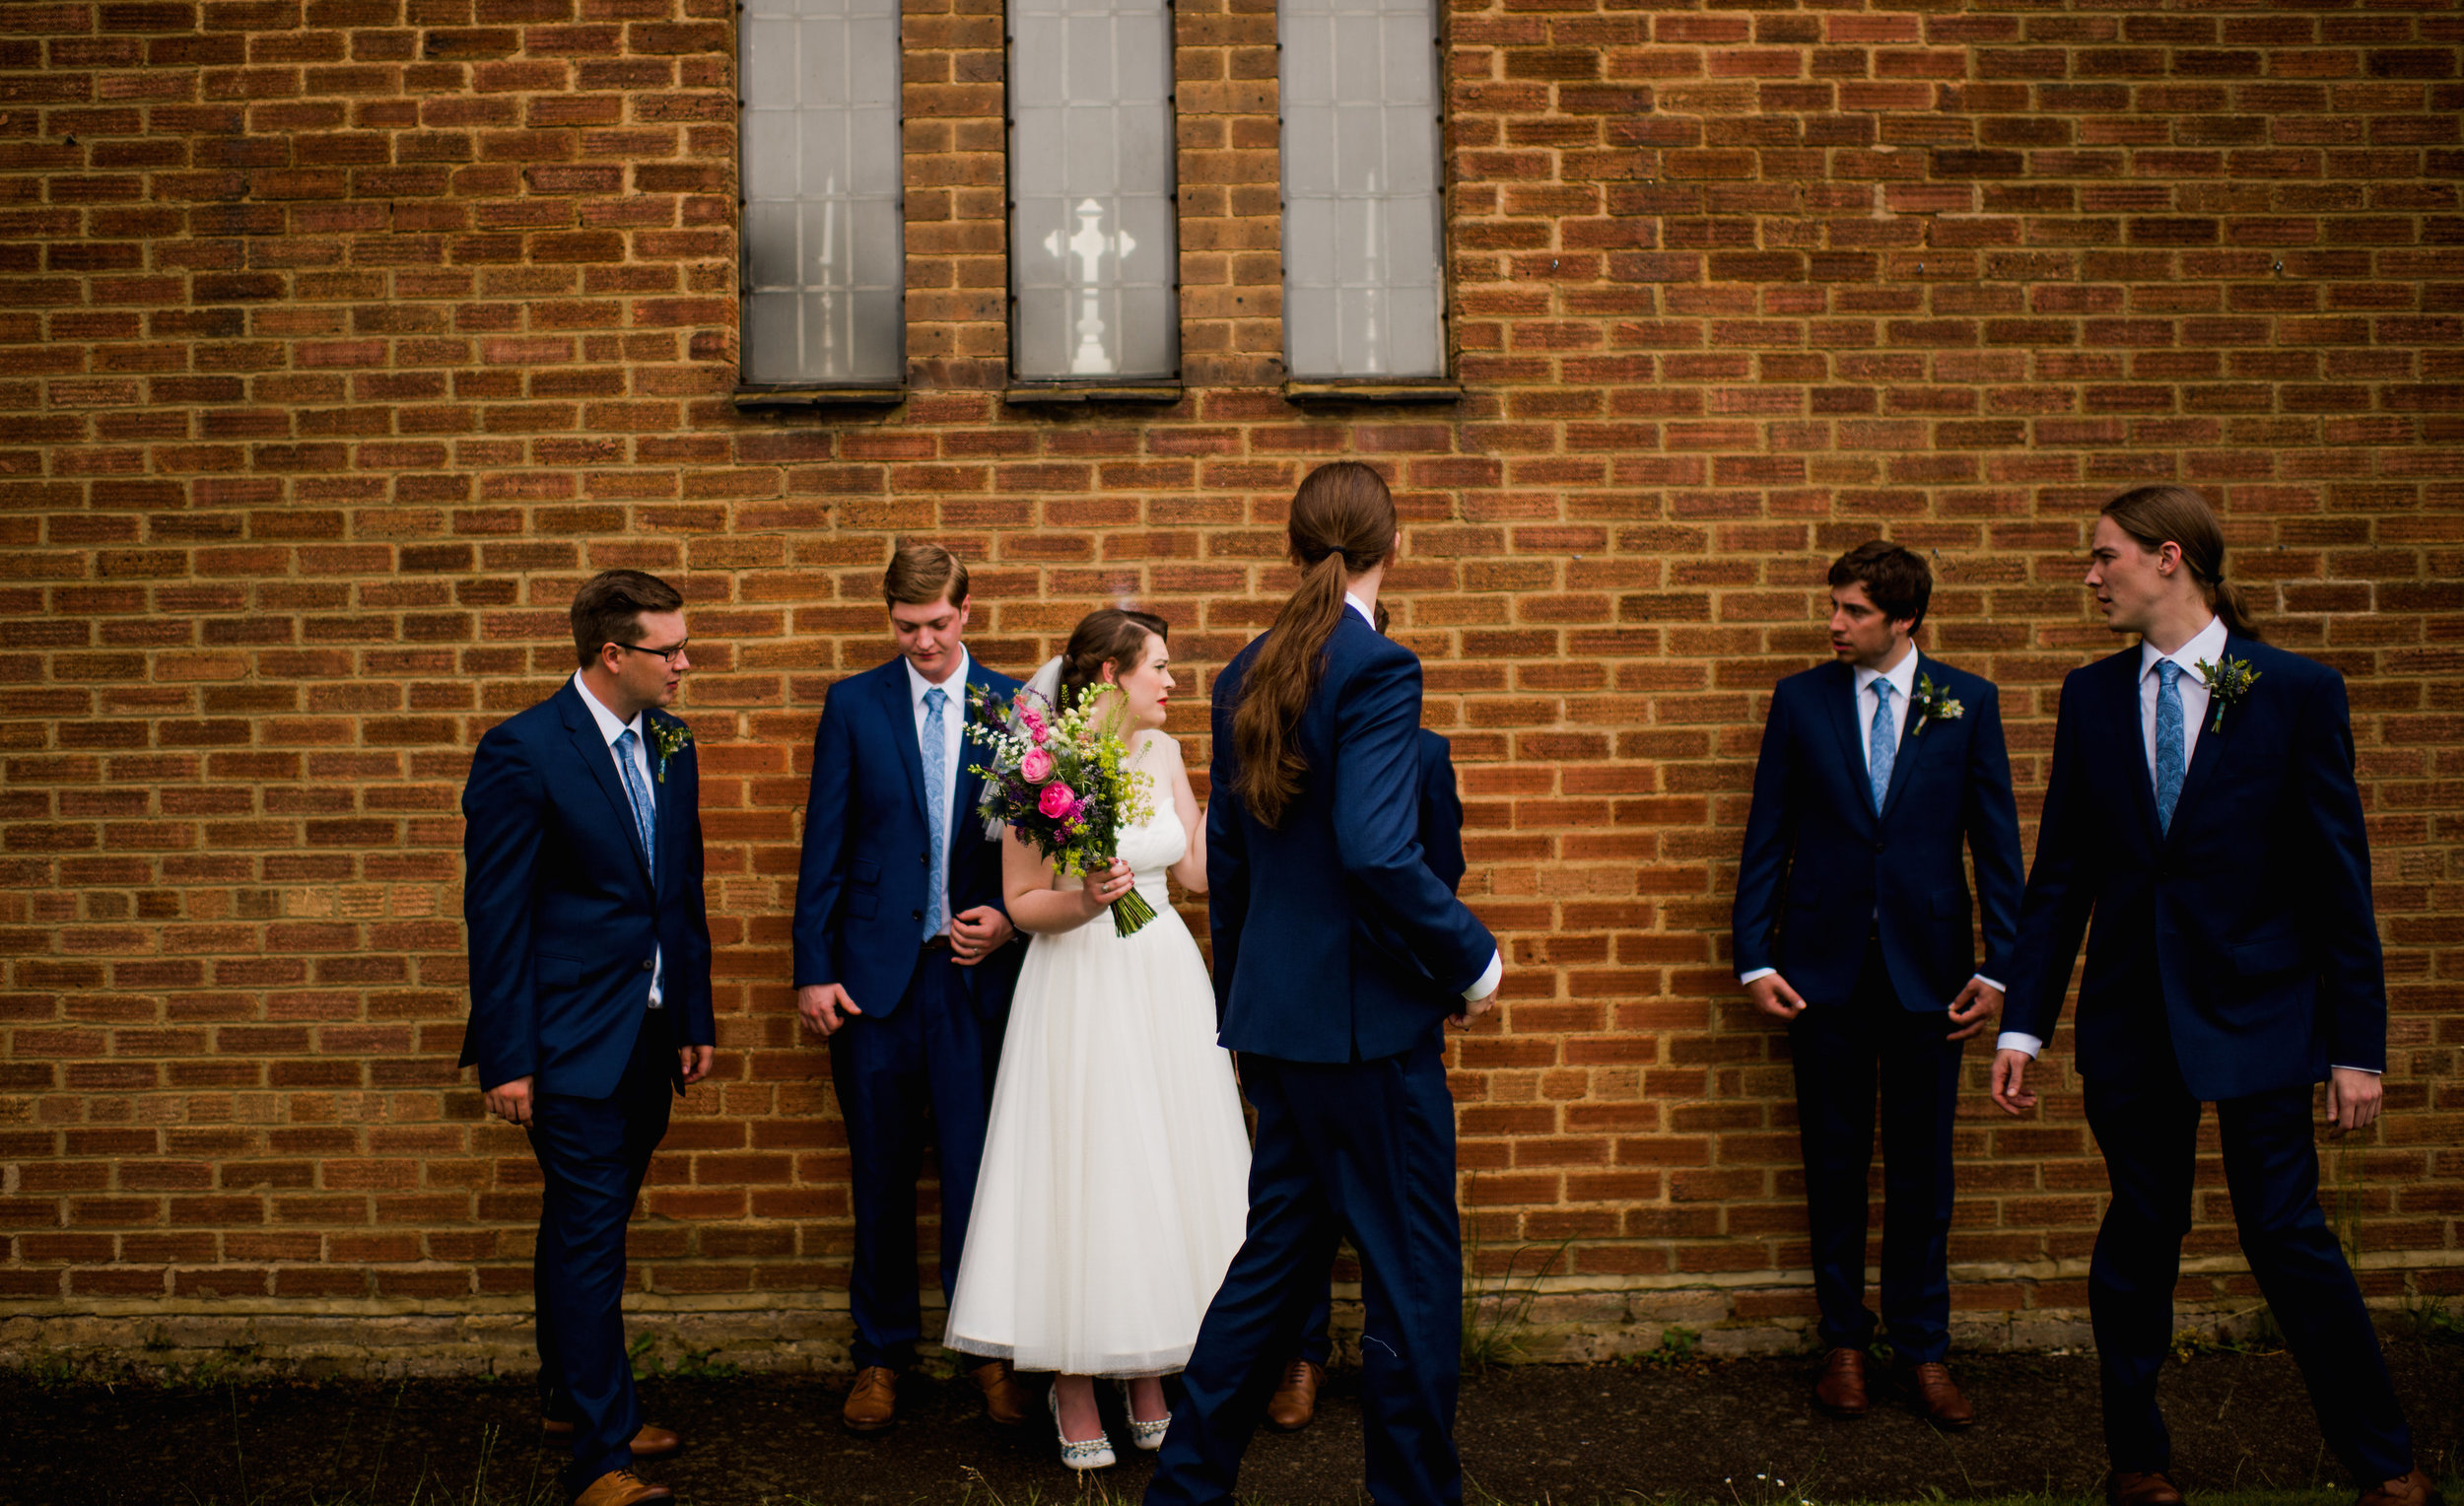 130 Emily + Daniel | Berkhamsted Towhall Wedding London Wedding Photographer Bride Groom Watford.jpg